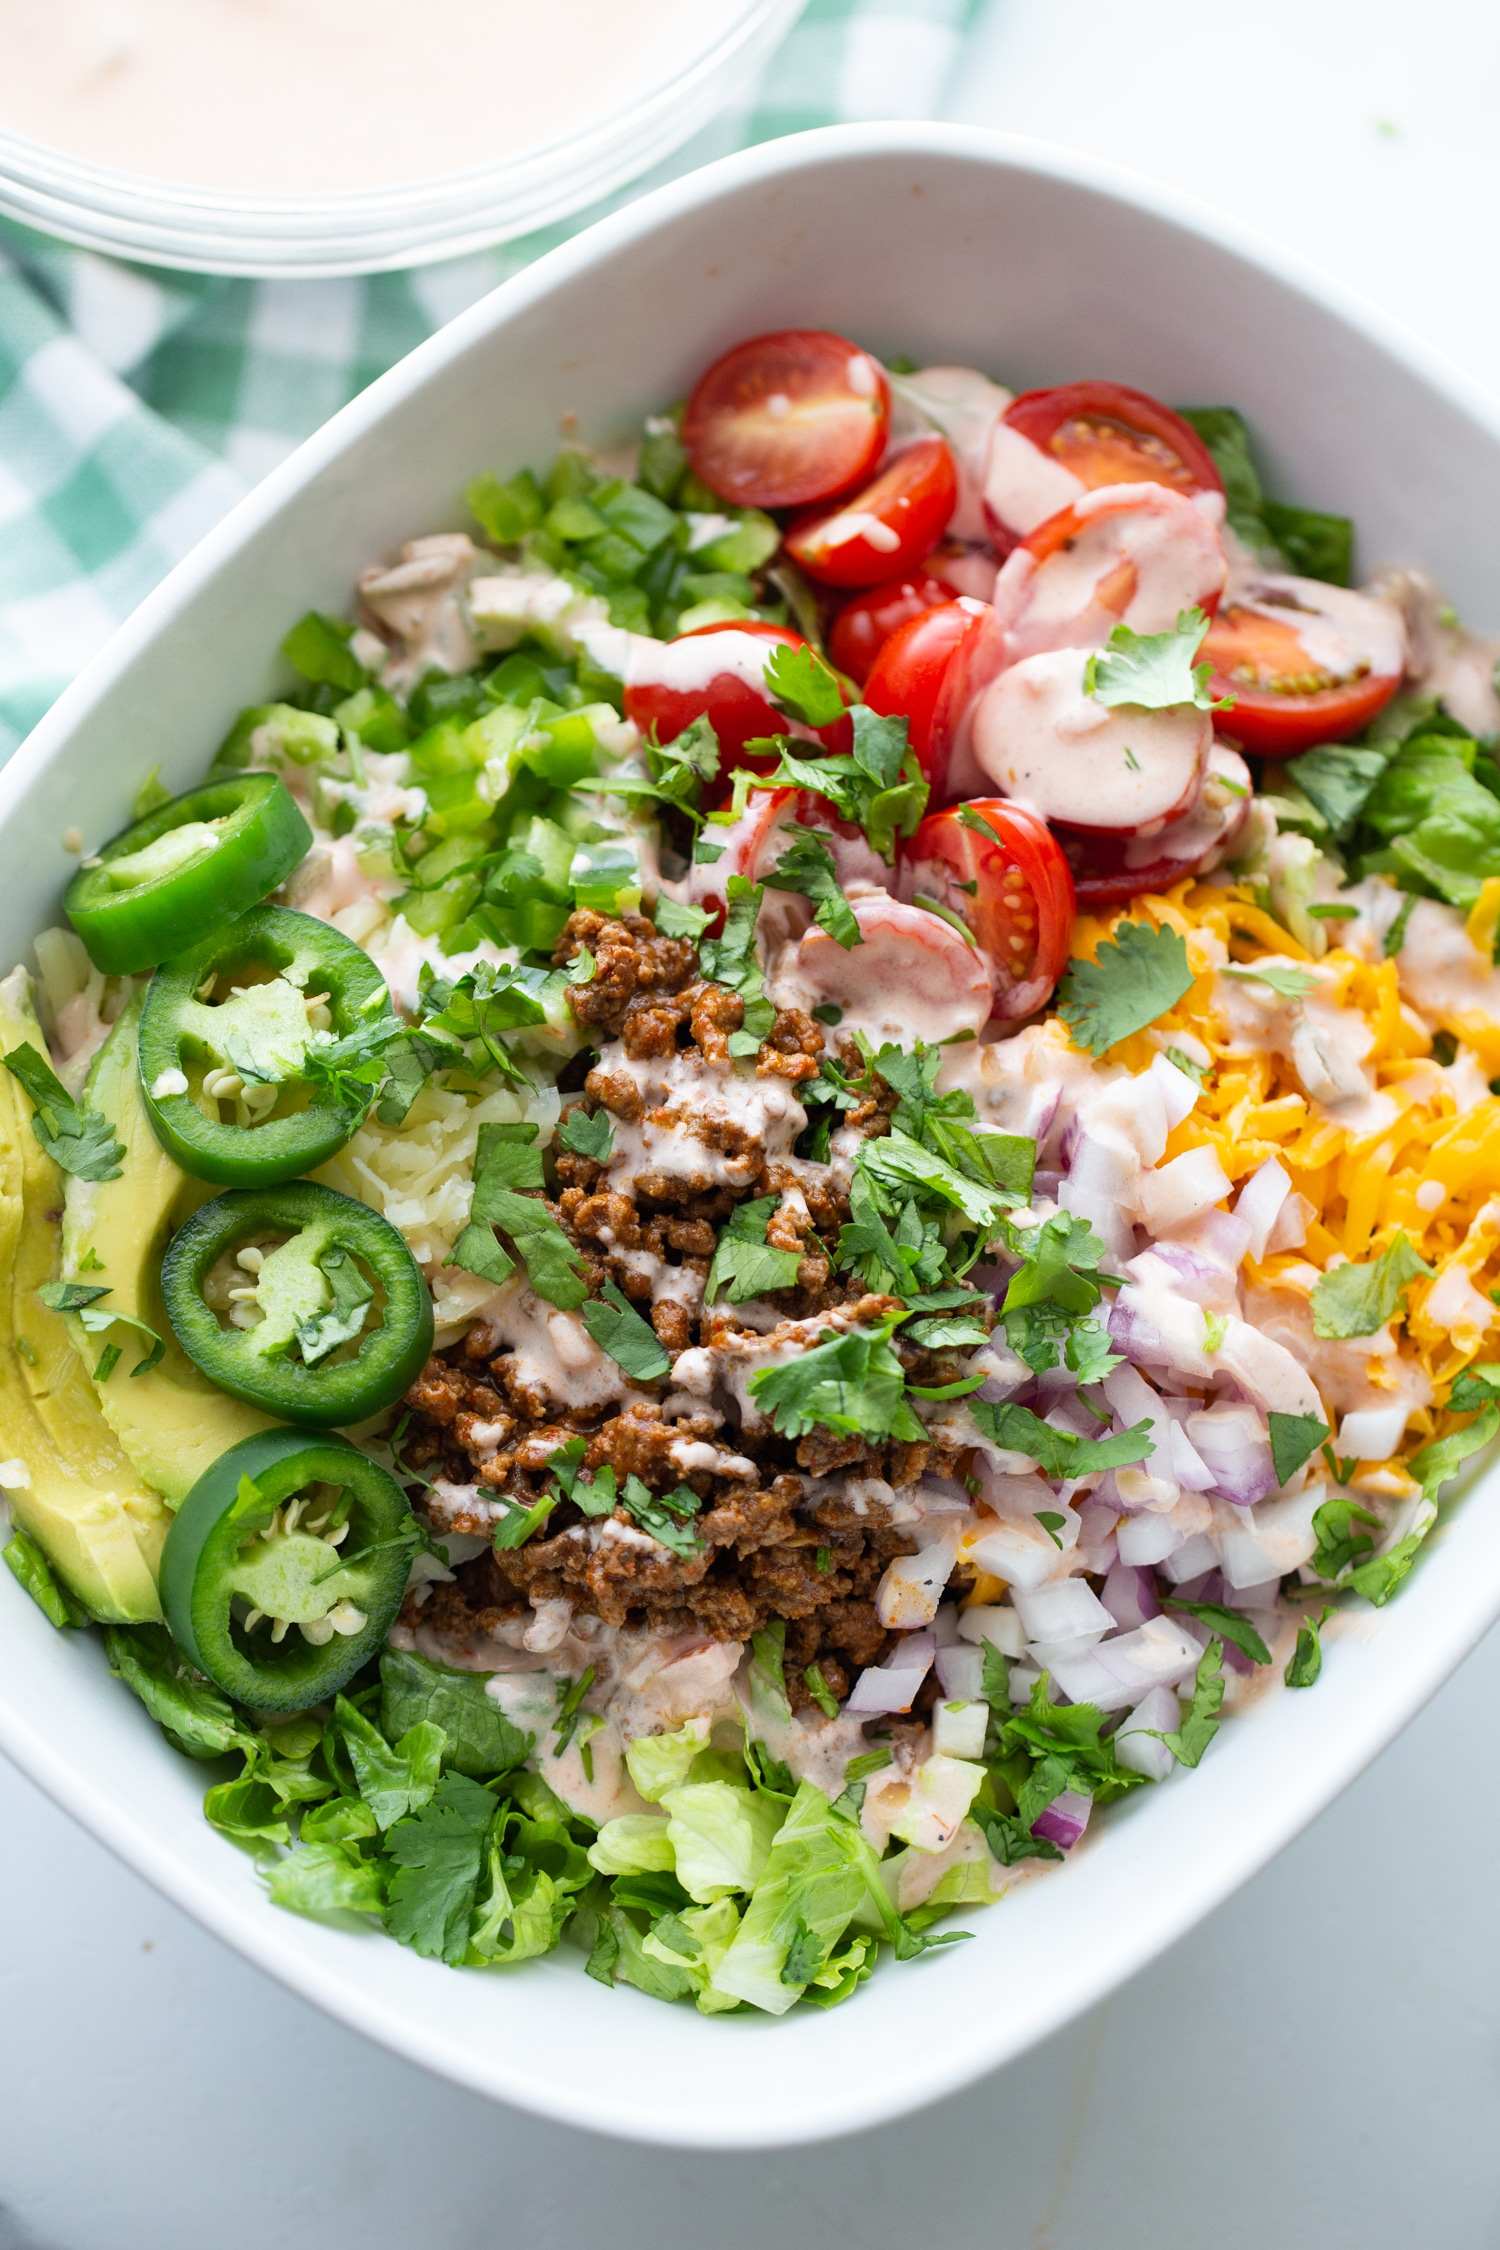 taco salad without tortilla shell in a white bowl with dressing